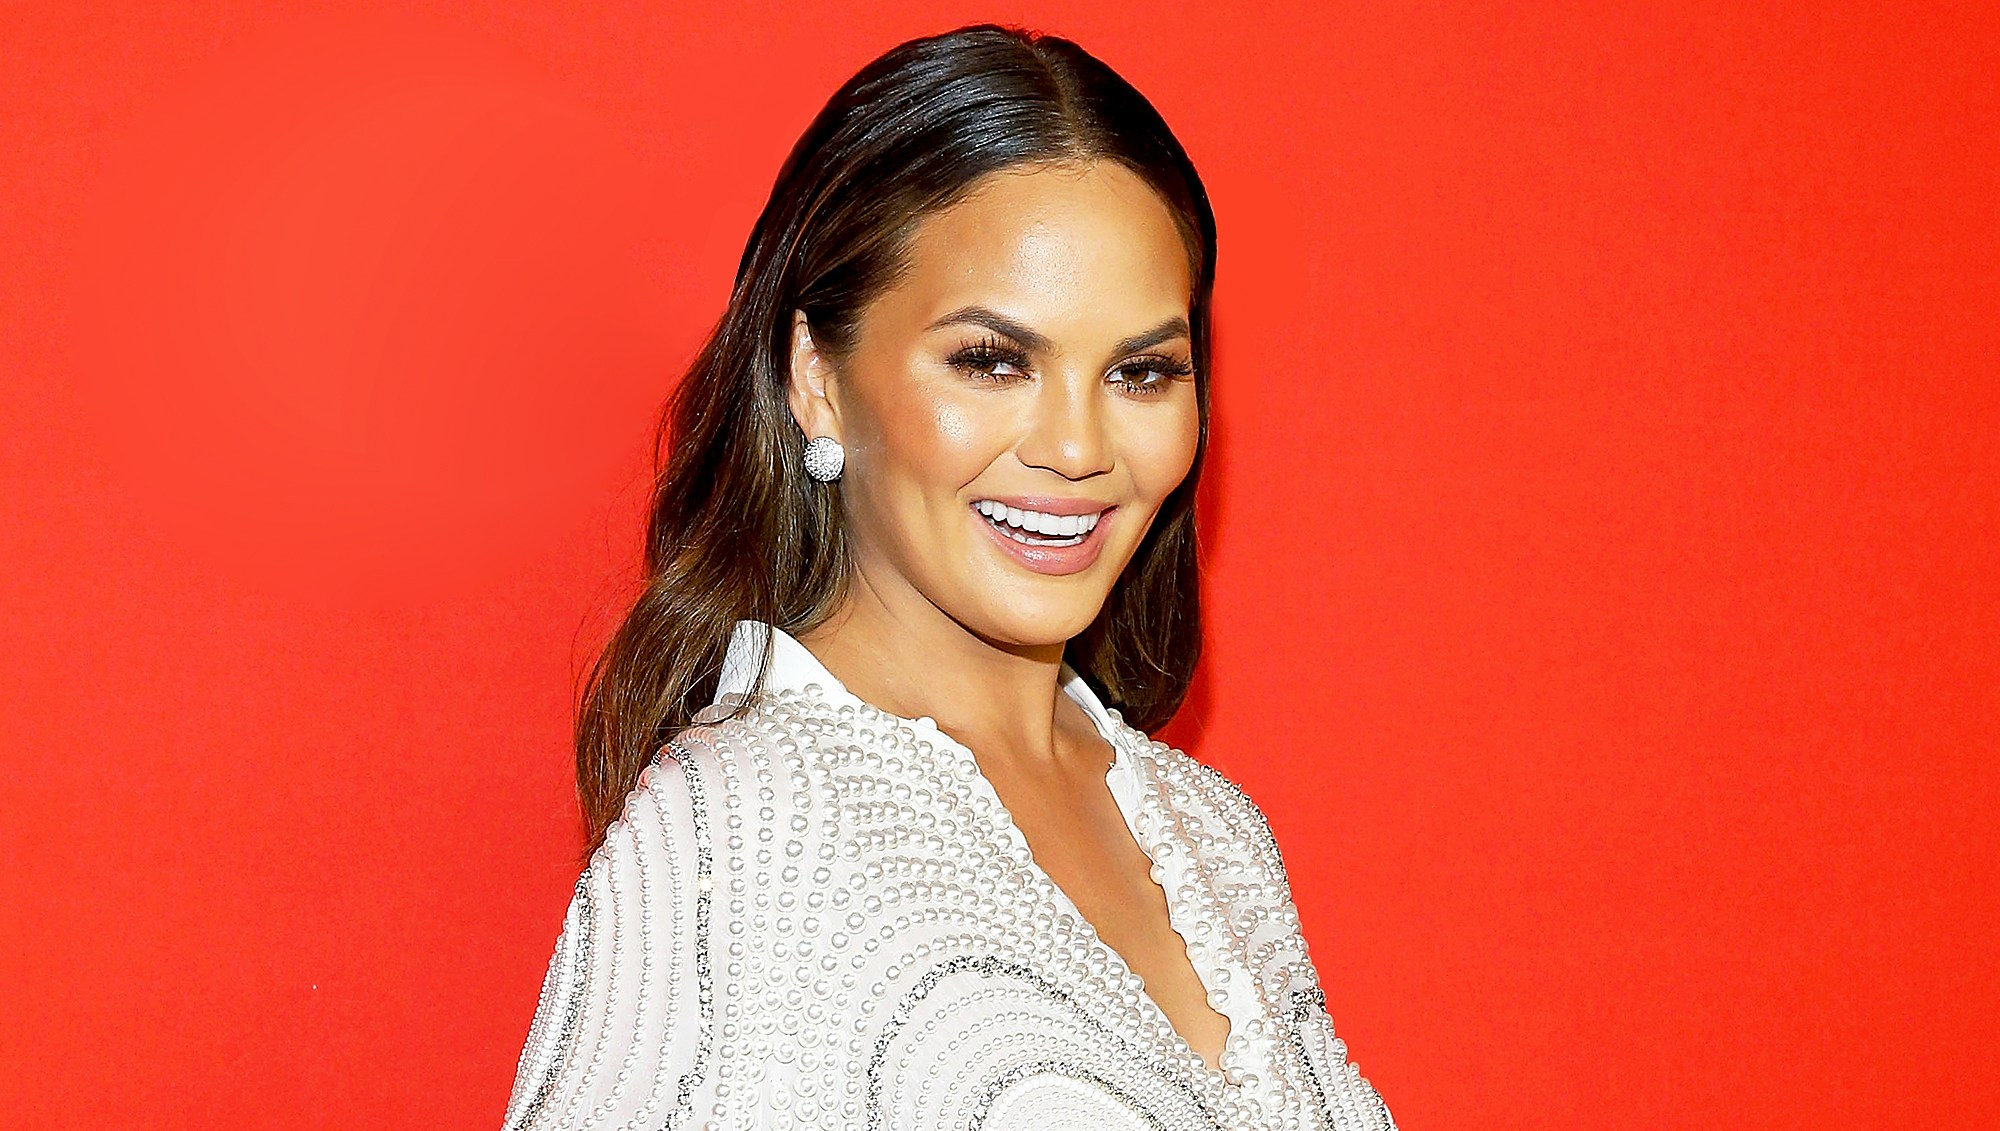 Chrissy Teigen attends Target's Toycracker Premiere event at Spring Studios in New York City.